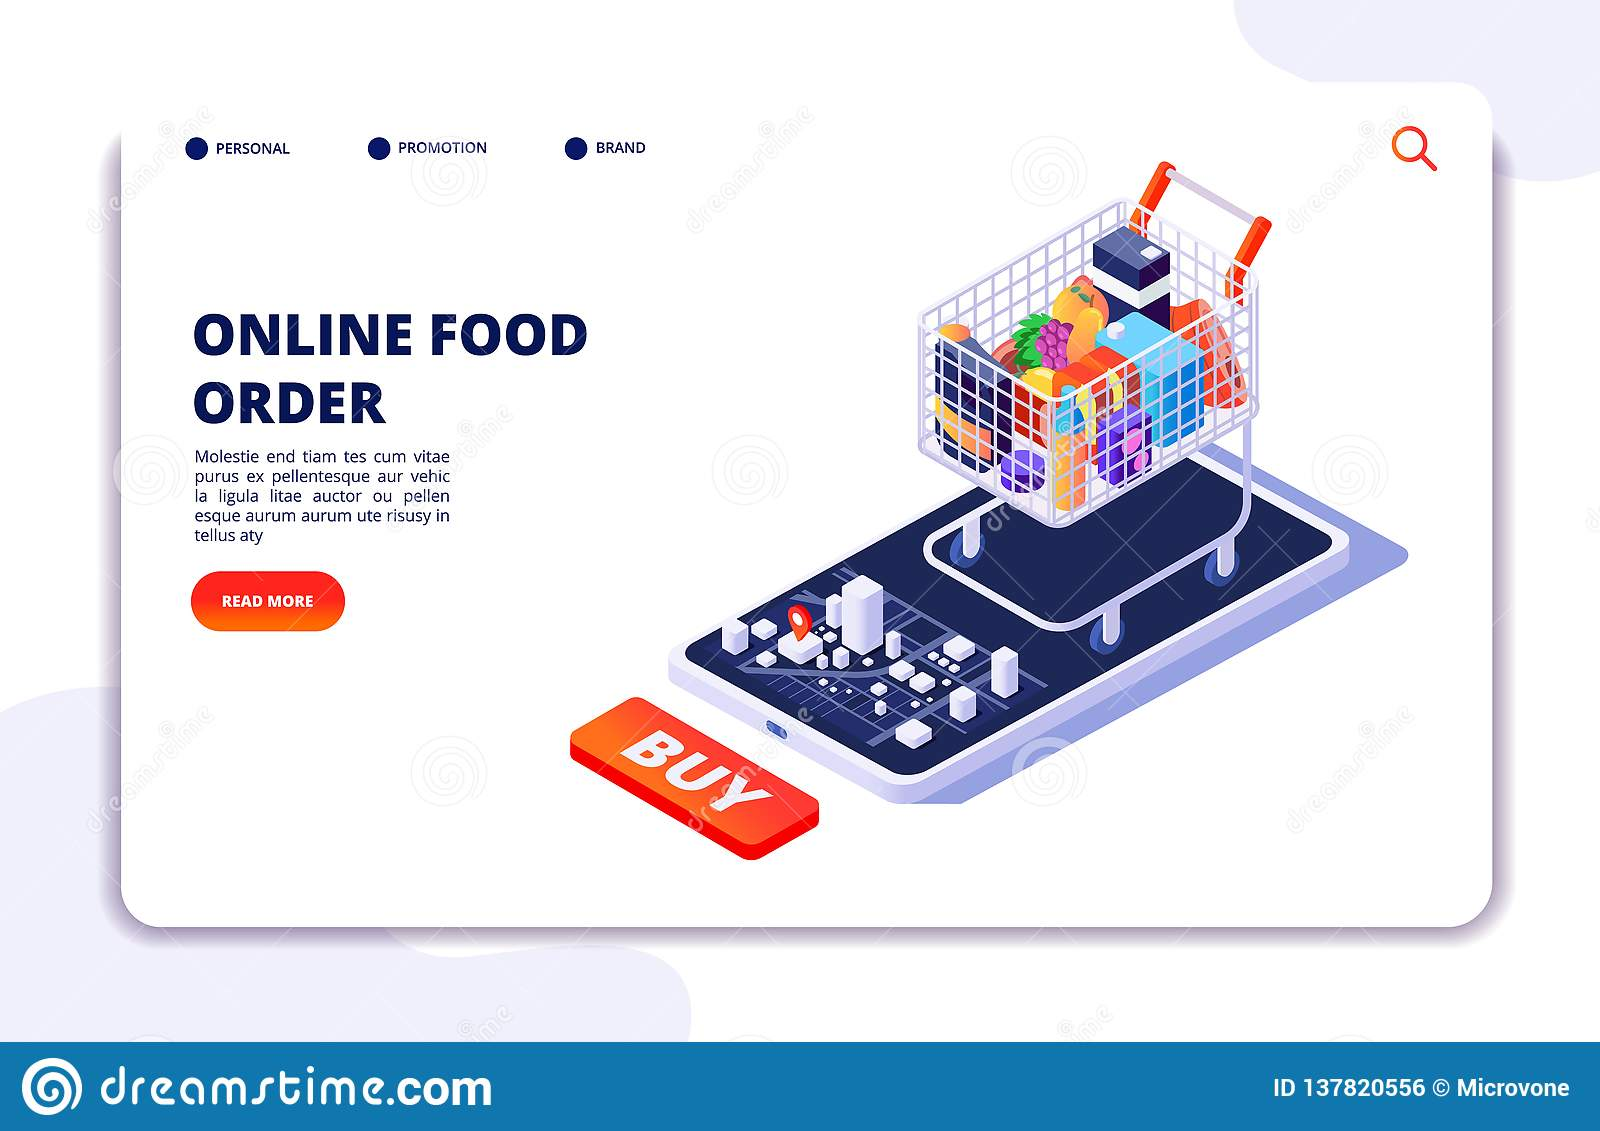 Grocery food delivery. Online order with mobile app. Internet food restaurant isometric concept